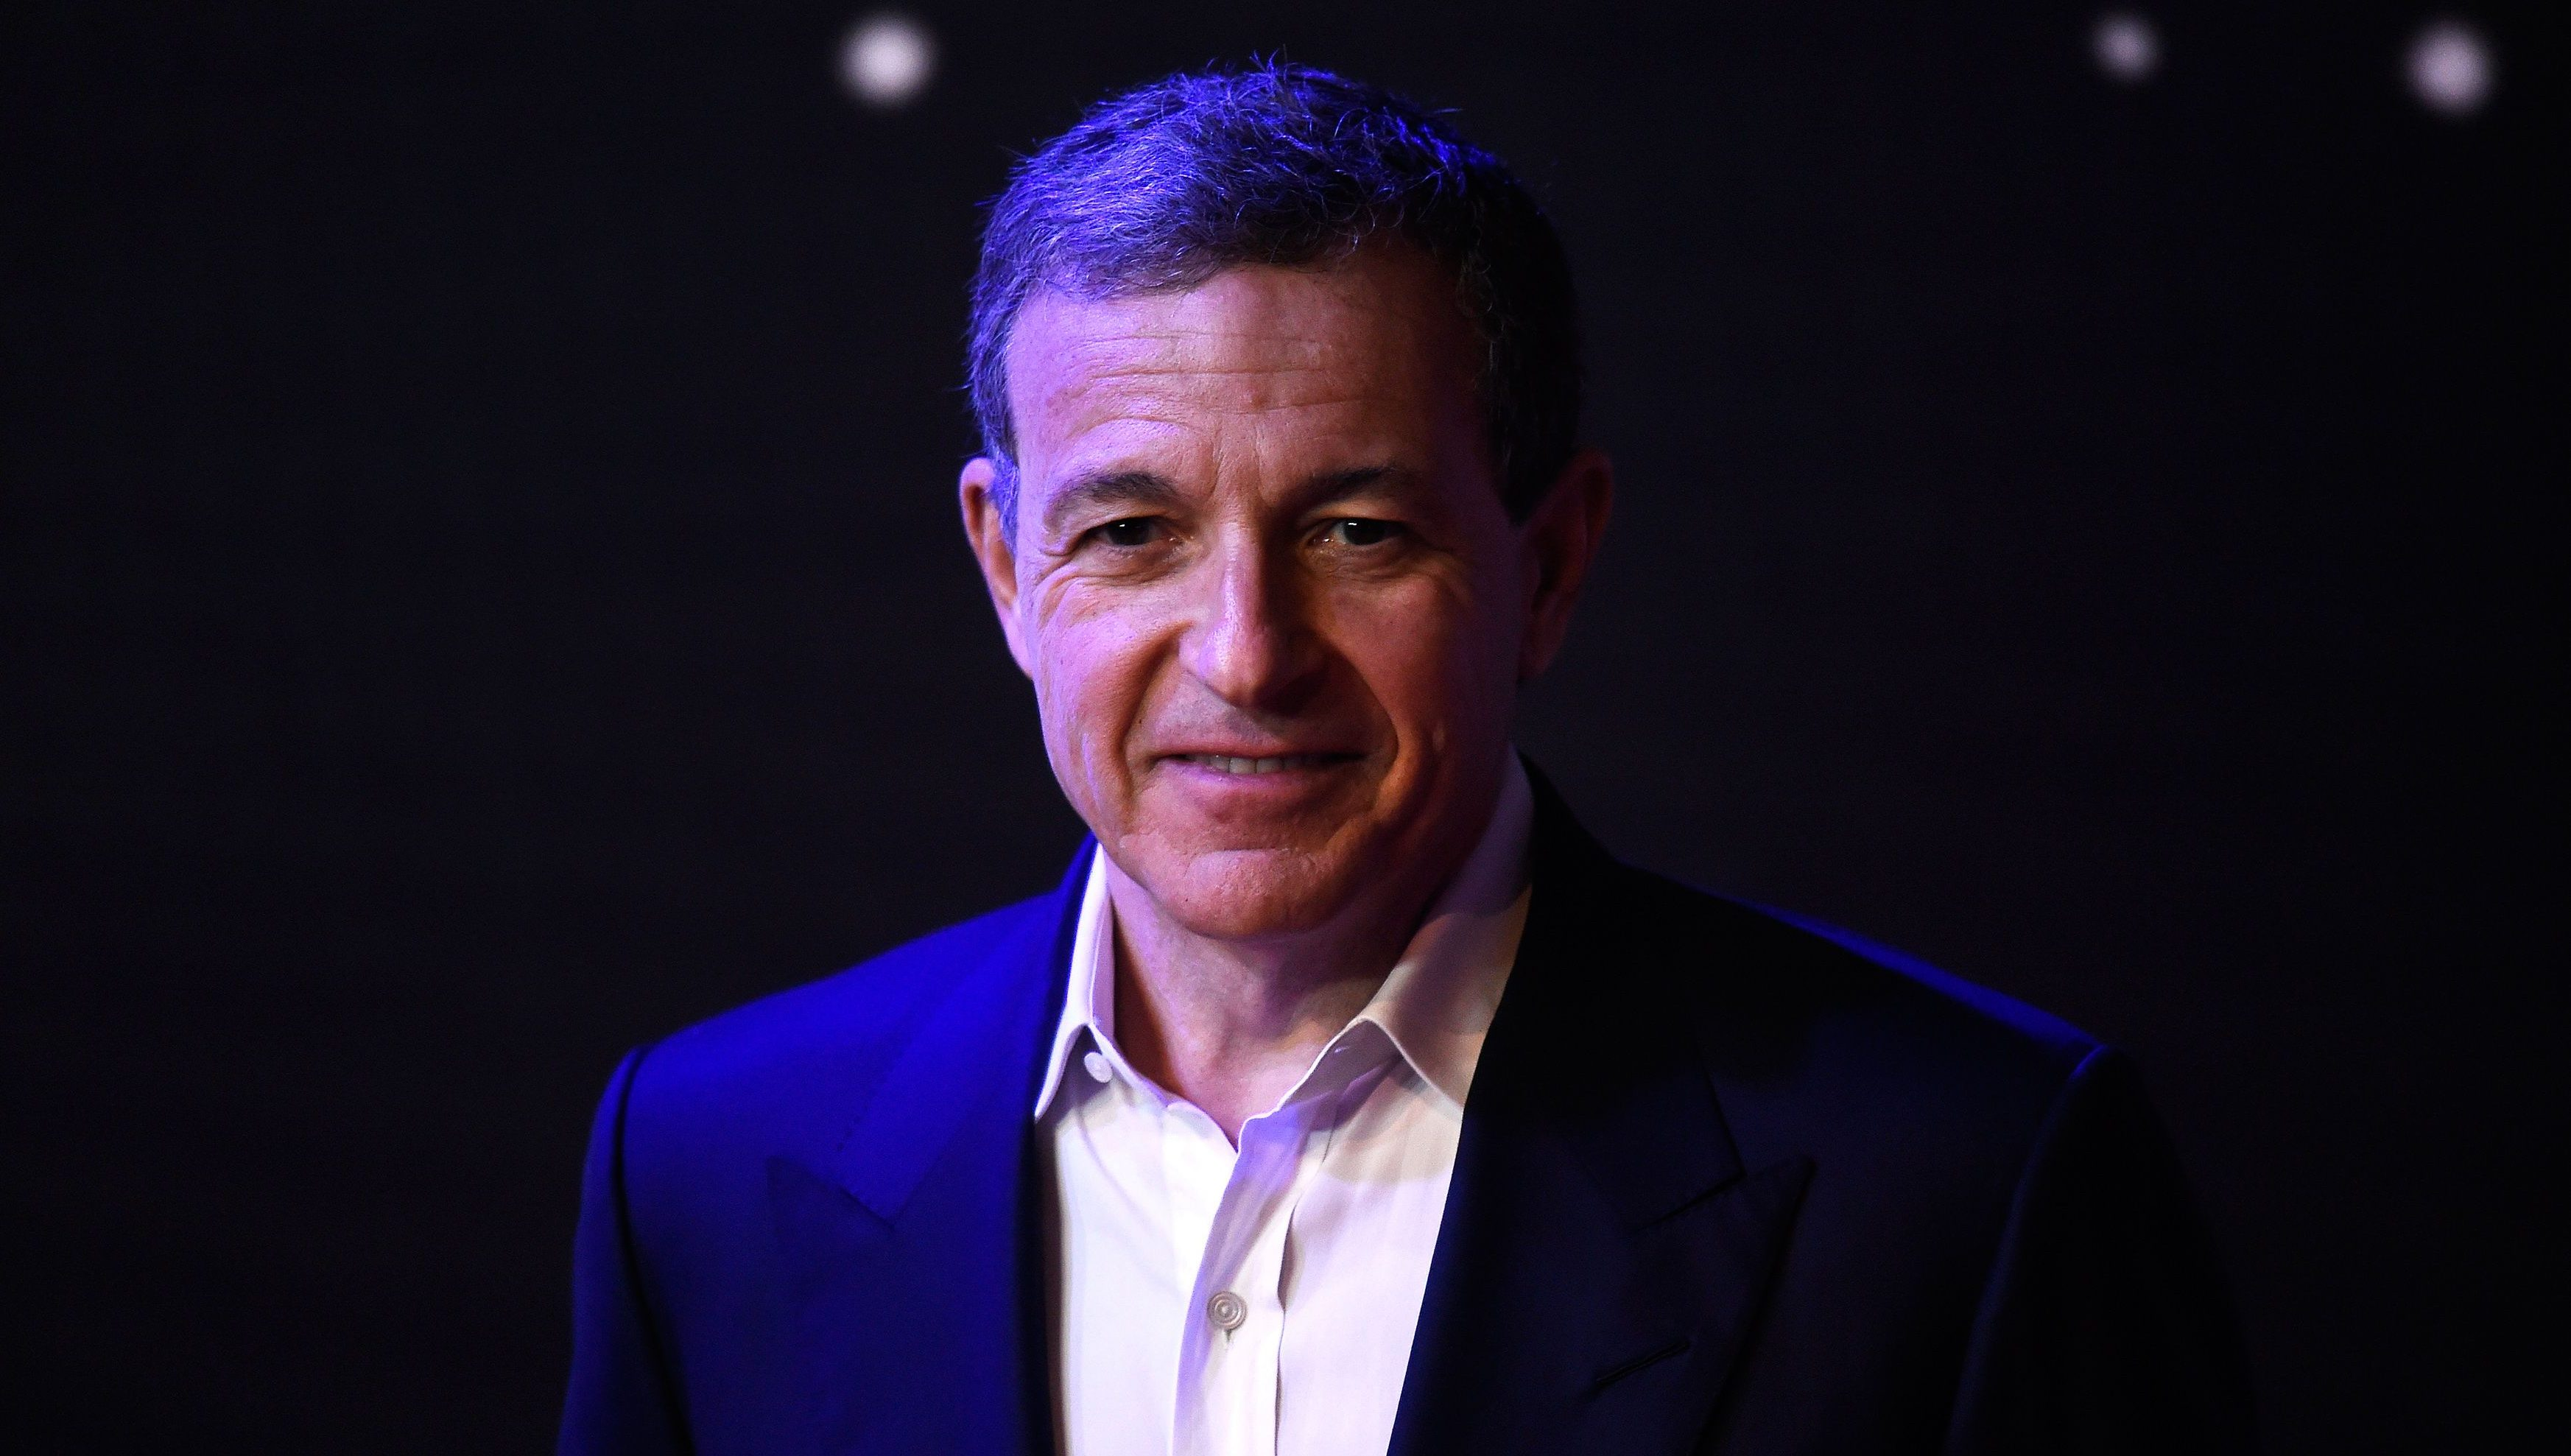 Bob Iger, the Chief Executive Officer of Disney, arrives at the European Premiere of Star Wars, The Force Awakens in Leicester Square, London, December 16, 2015.    REUTERS/Dylan Martinez  - LR2EBCG1DGRSI